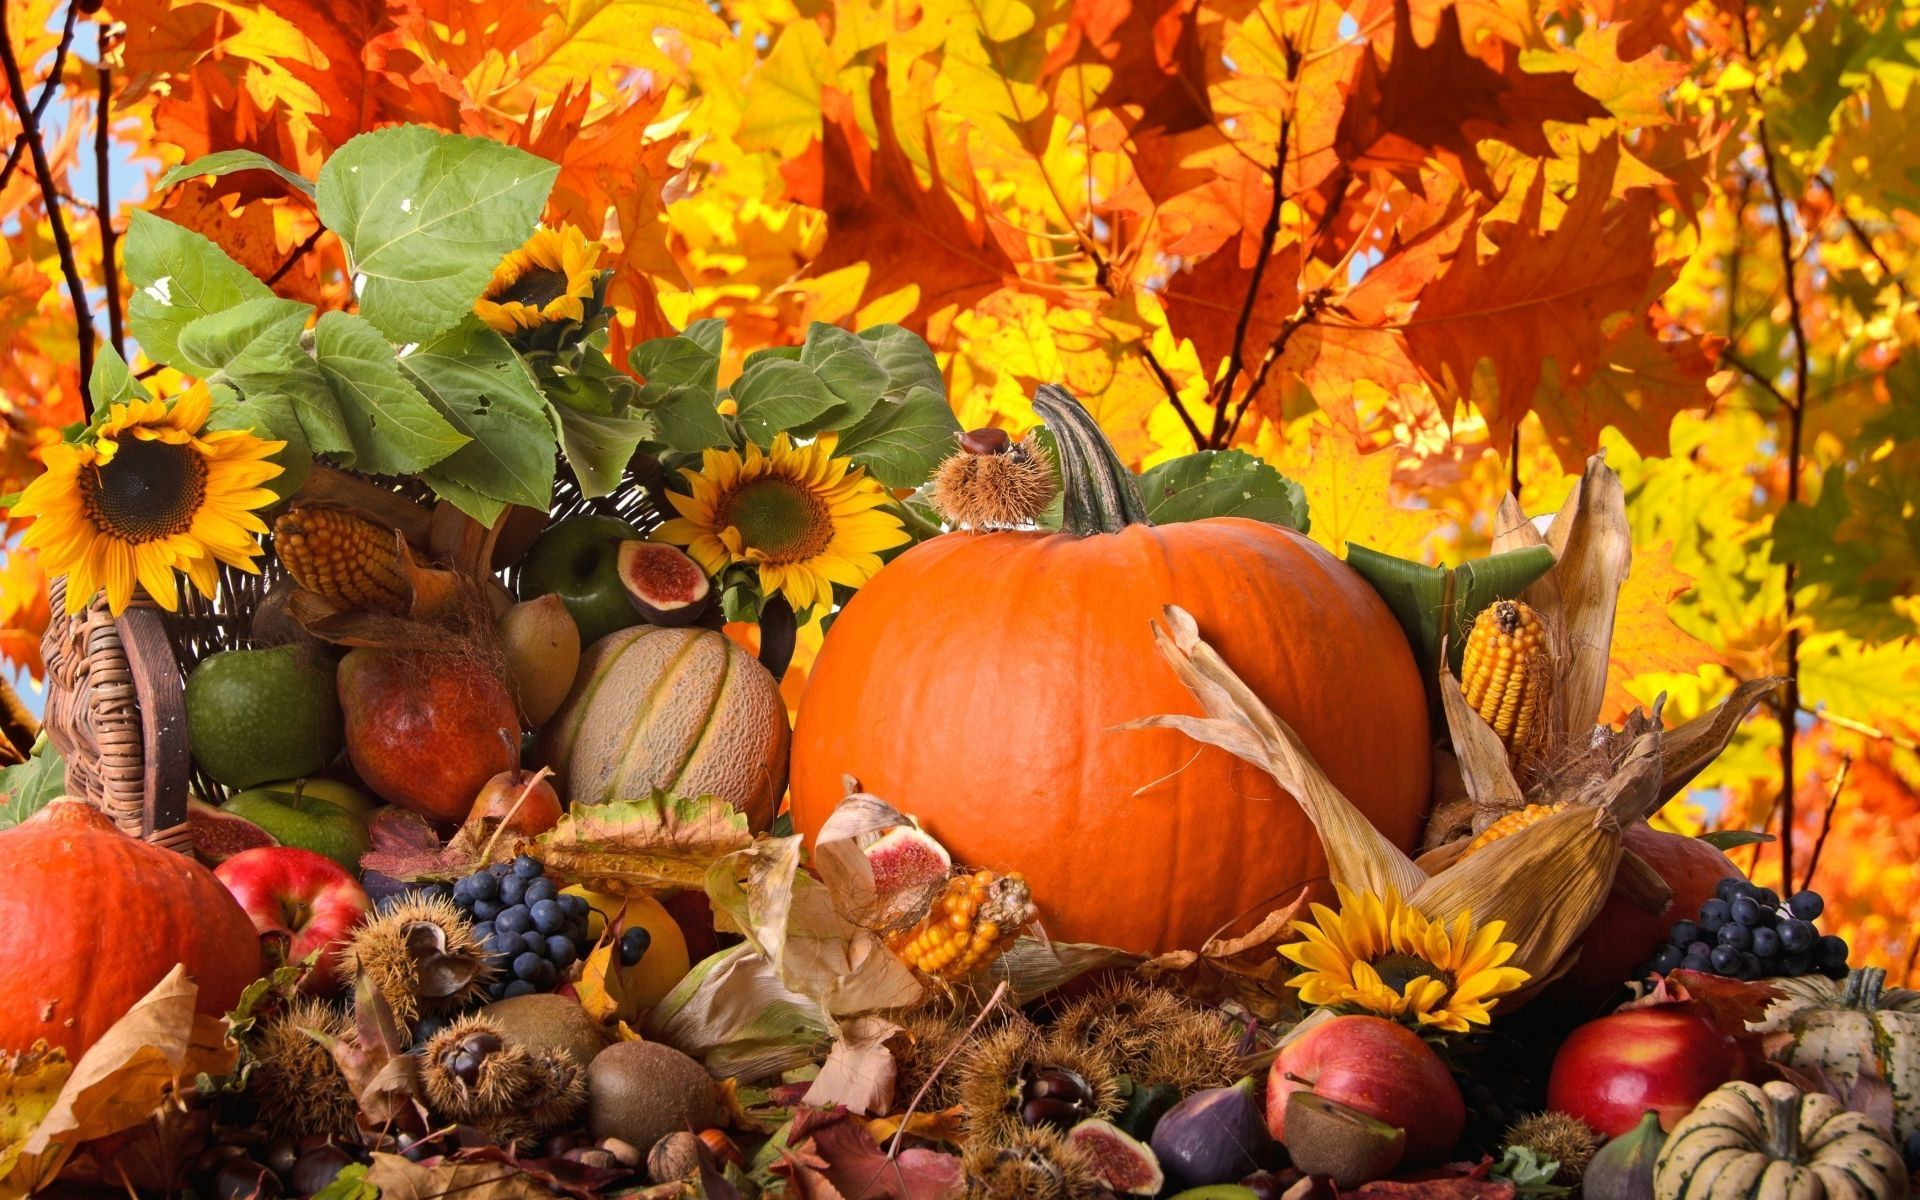 Pin By Marion Demilio On Mobile Screensaver Thanksgiving Wallpaper Free Thanksgiving Wallpaper Thanksgiving Background